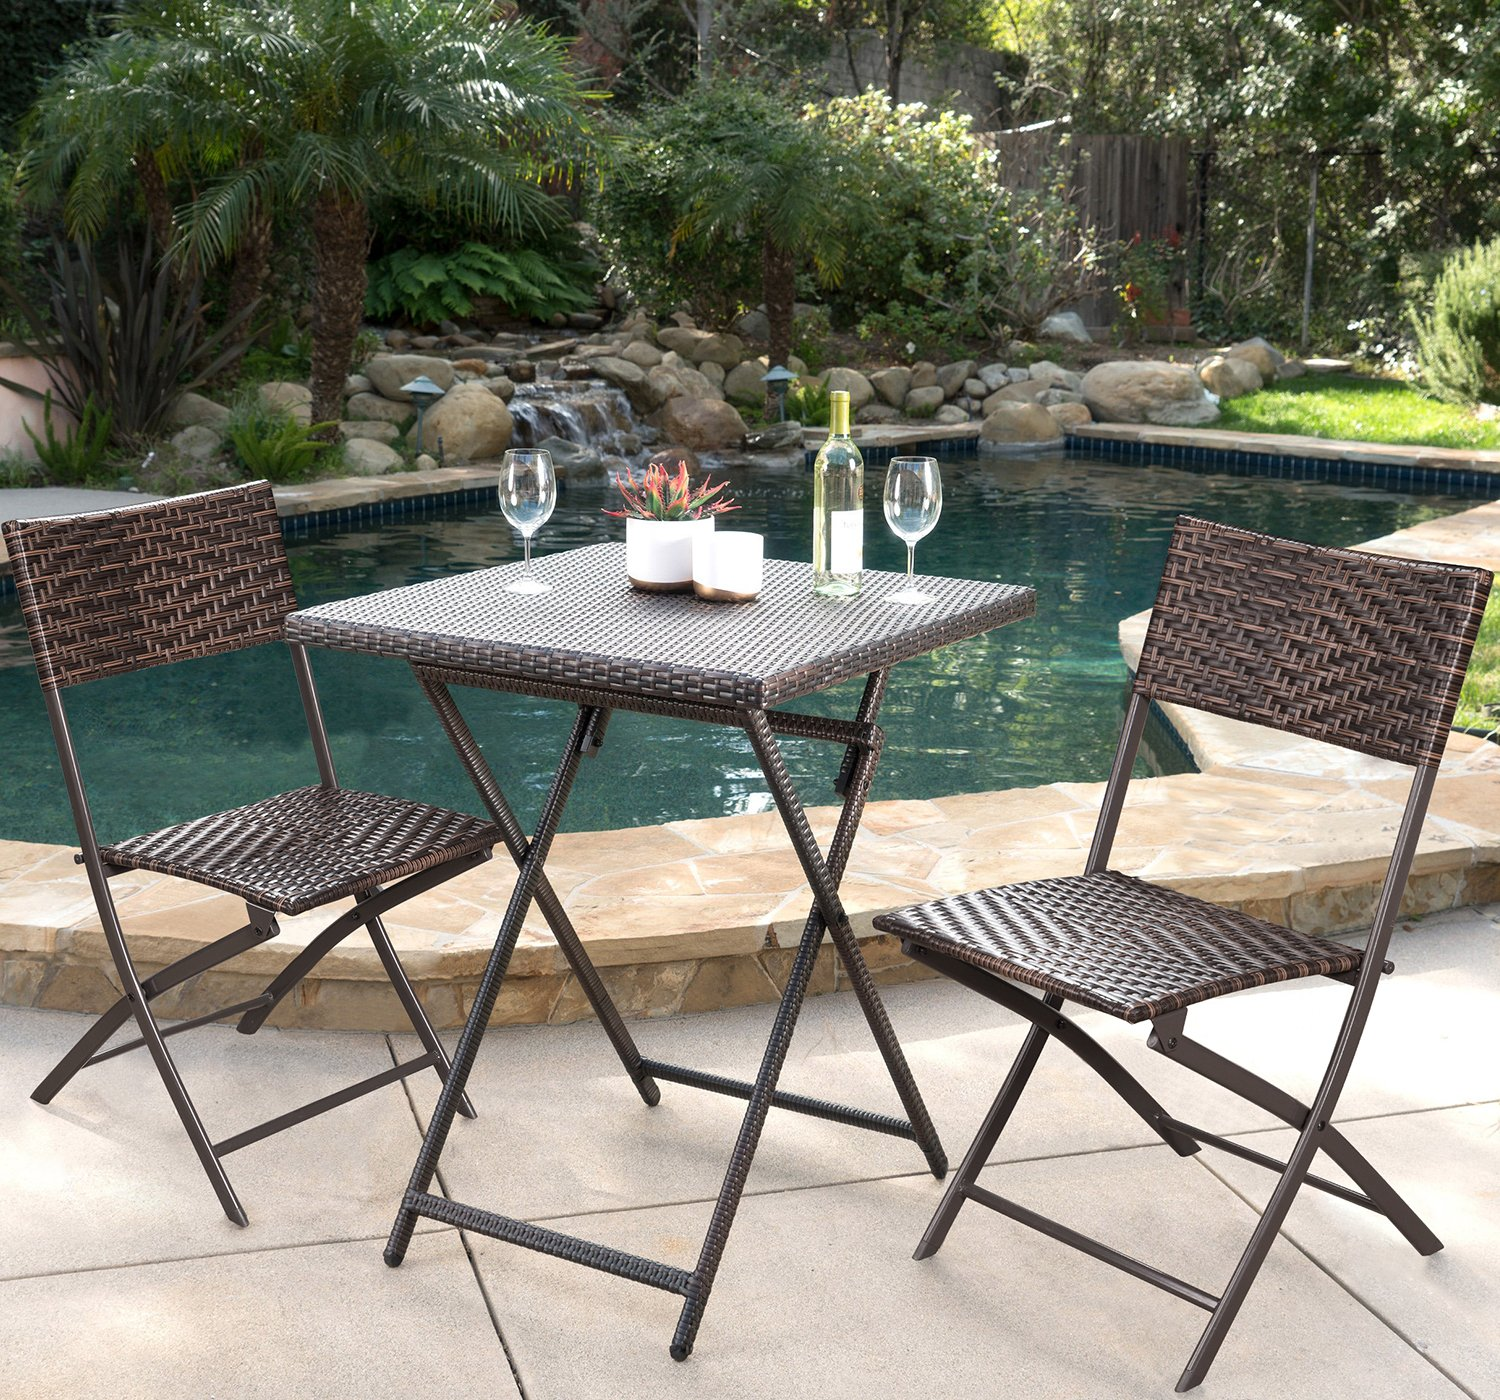 Devoko Rattan Patio Dining Chair 4 Pieces Space Saving Deck Camping Chairs Garden Pool Beach Lawn Using Outdoor Folding Chair (Brown) by Devoko (Image #6)